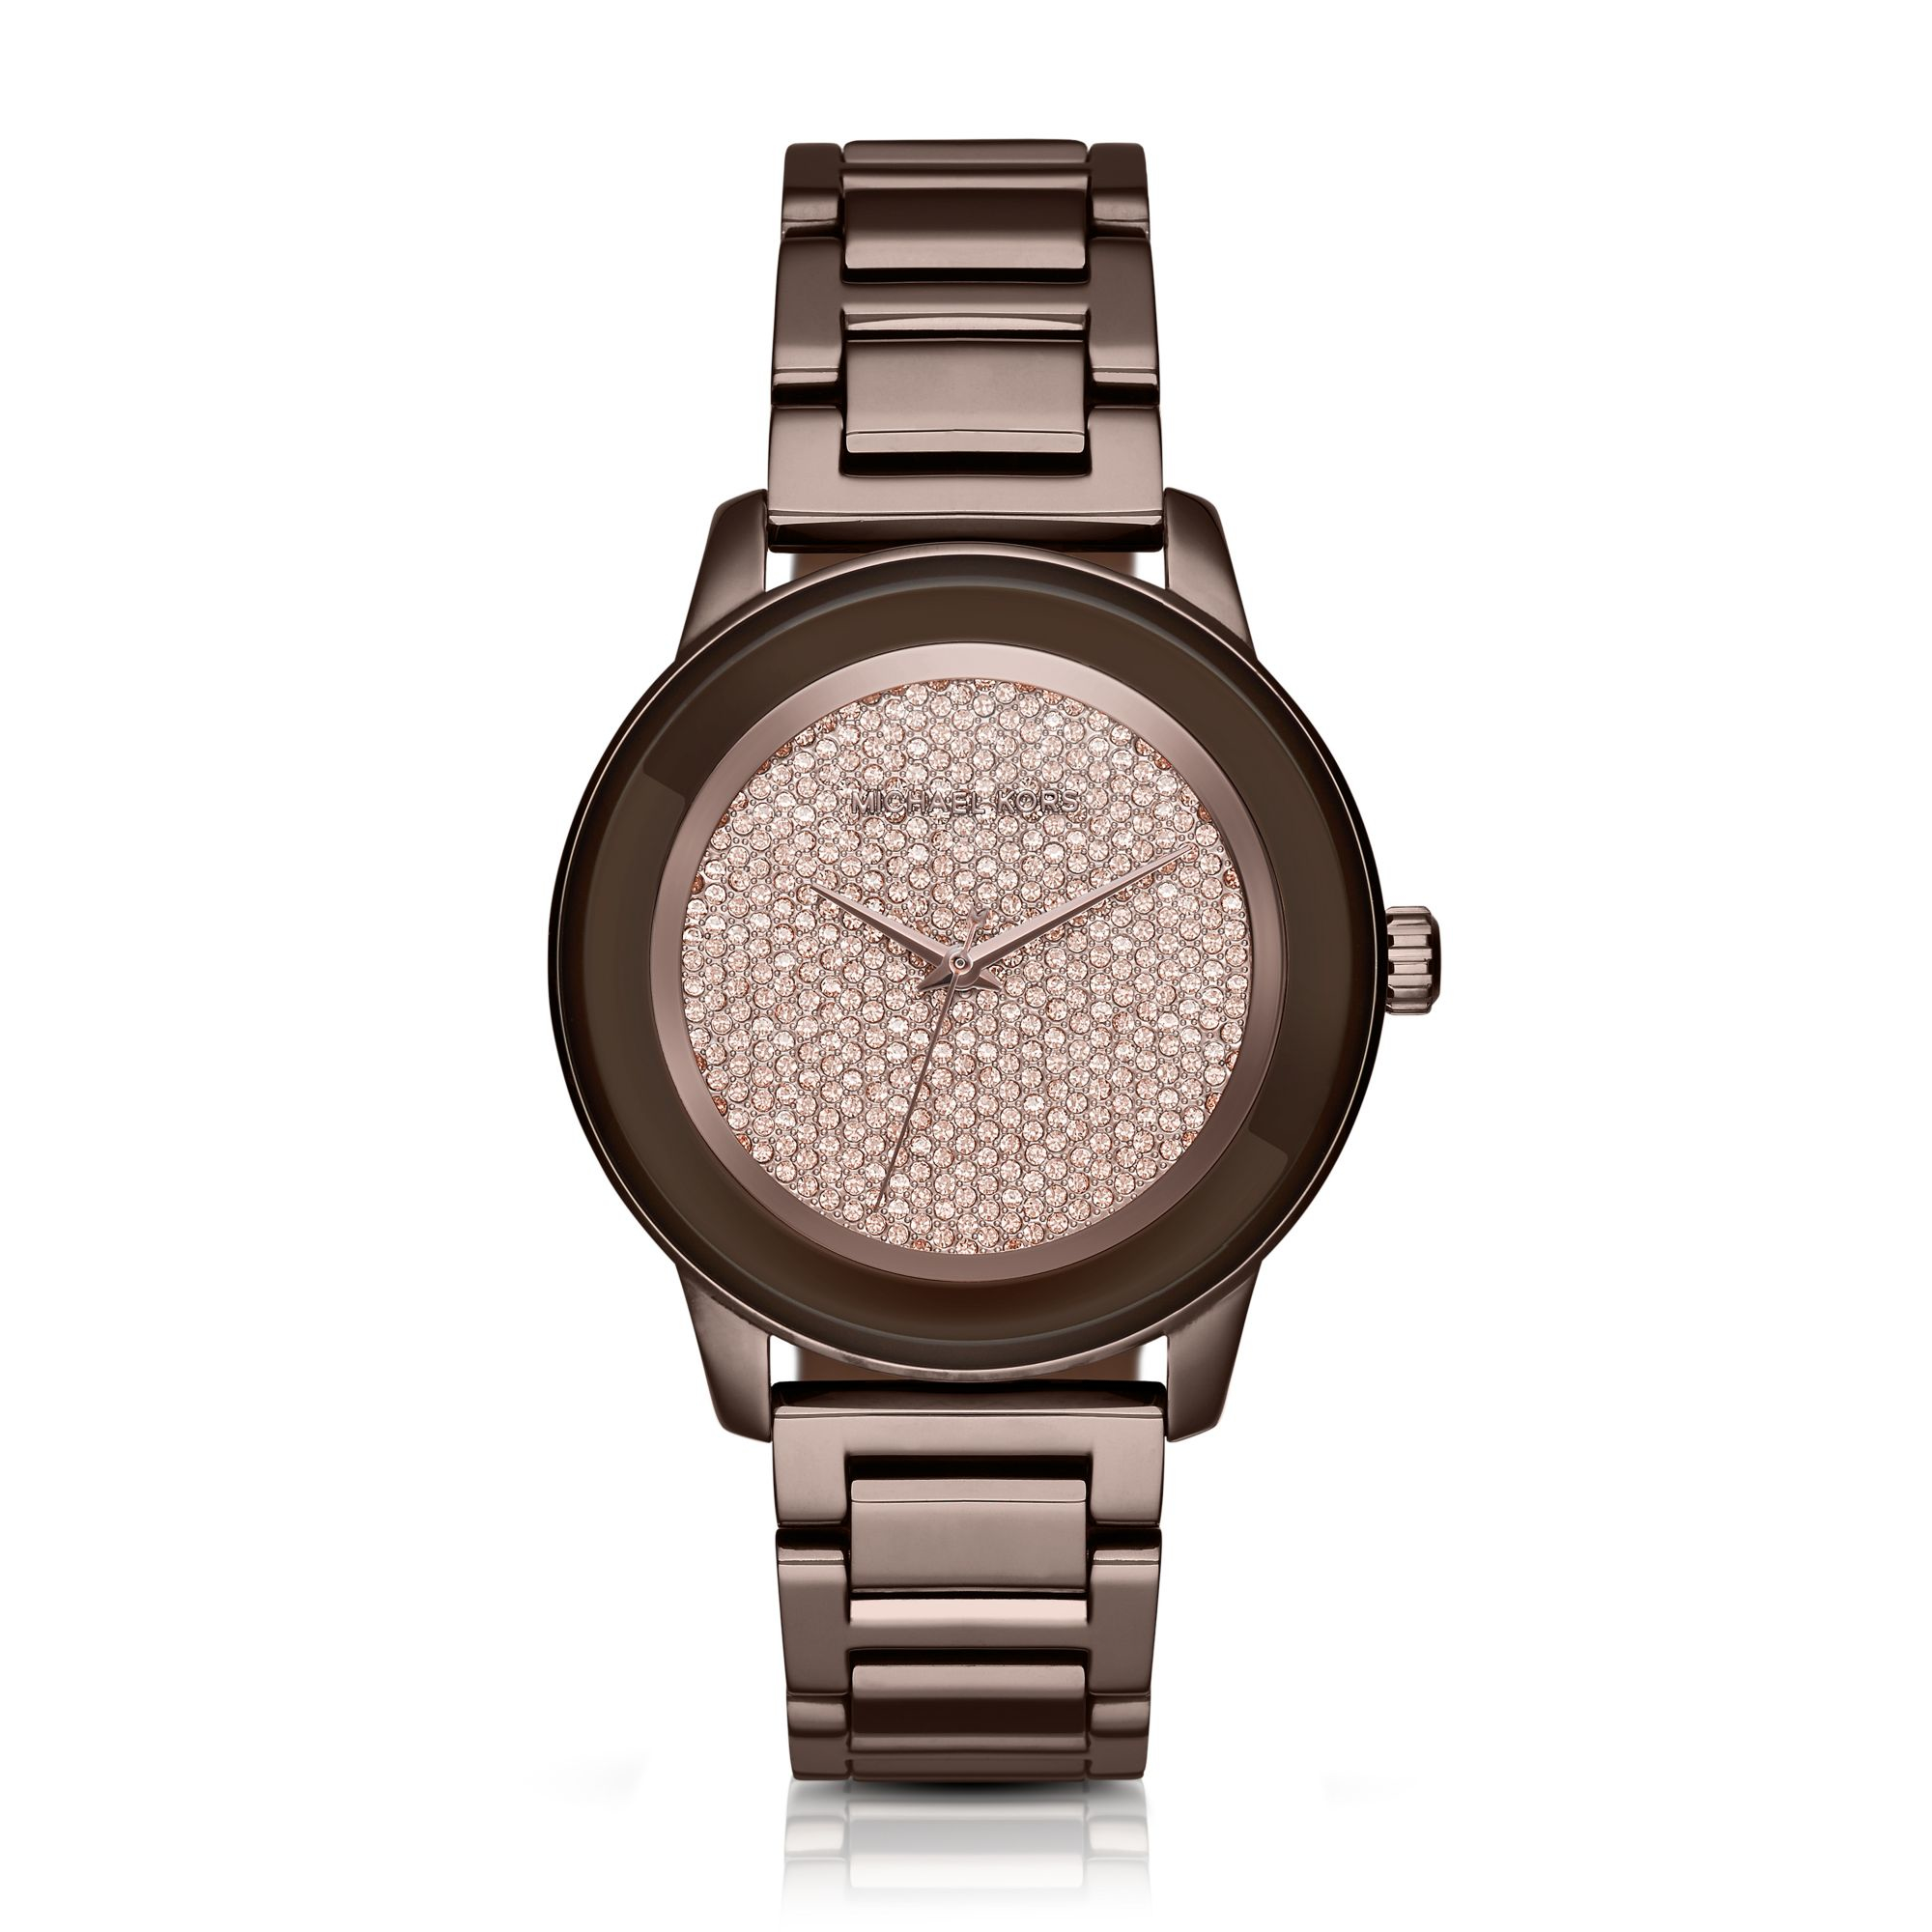 2e4f0fc3ff26 Lyst - Michael Kors Kinley Pave Sable Watch in Brown